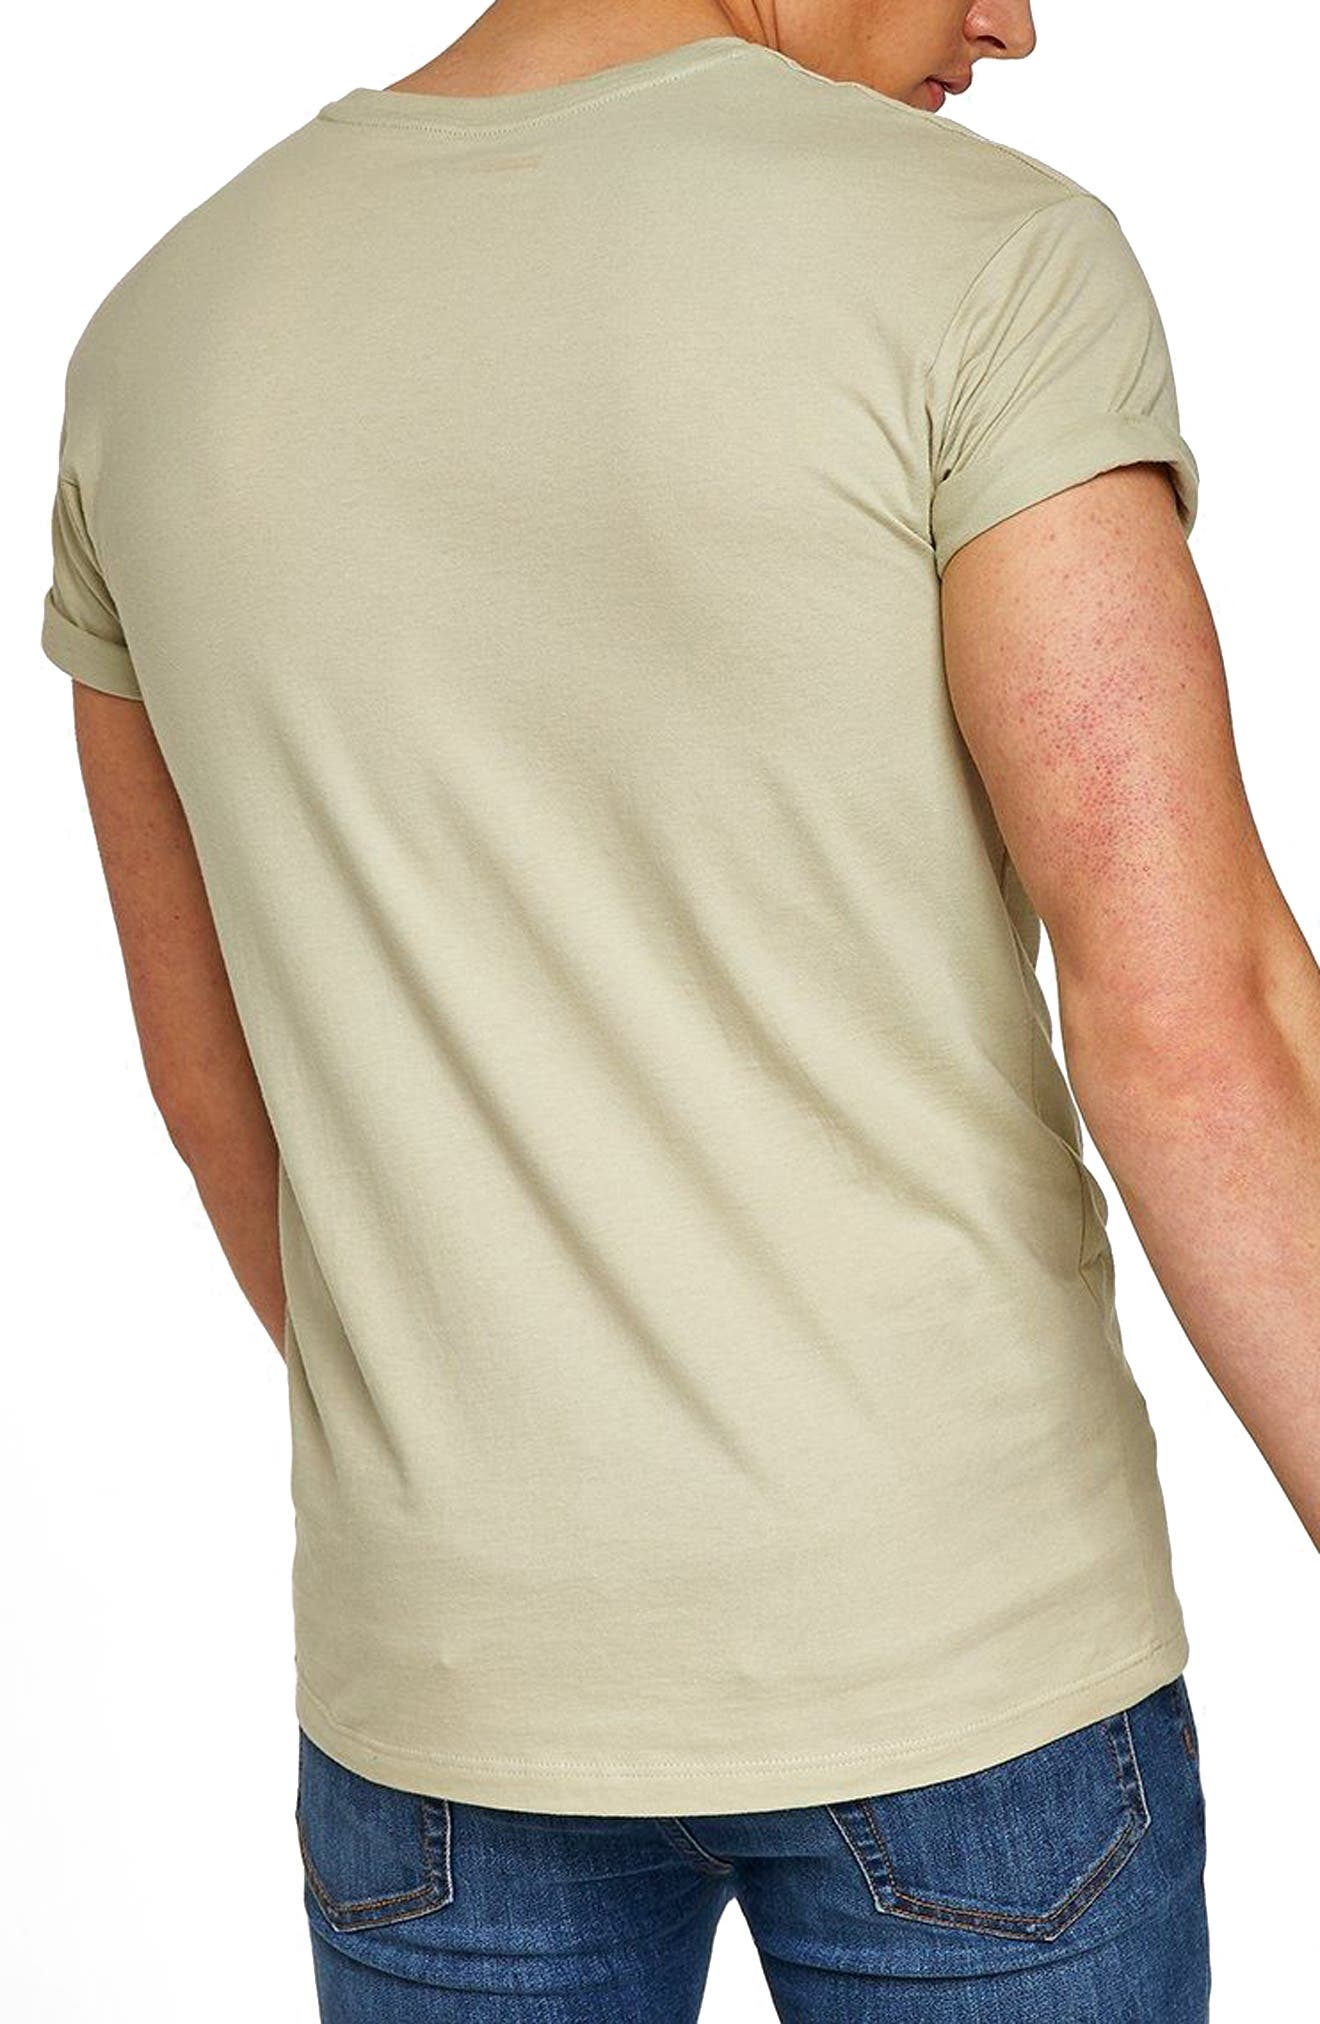 Muscle Fit Roller T-Shirt,                             Alternate thumbnail 2, color,                             330